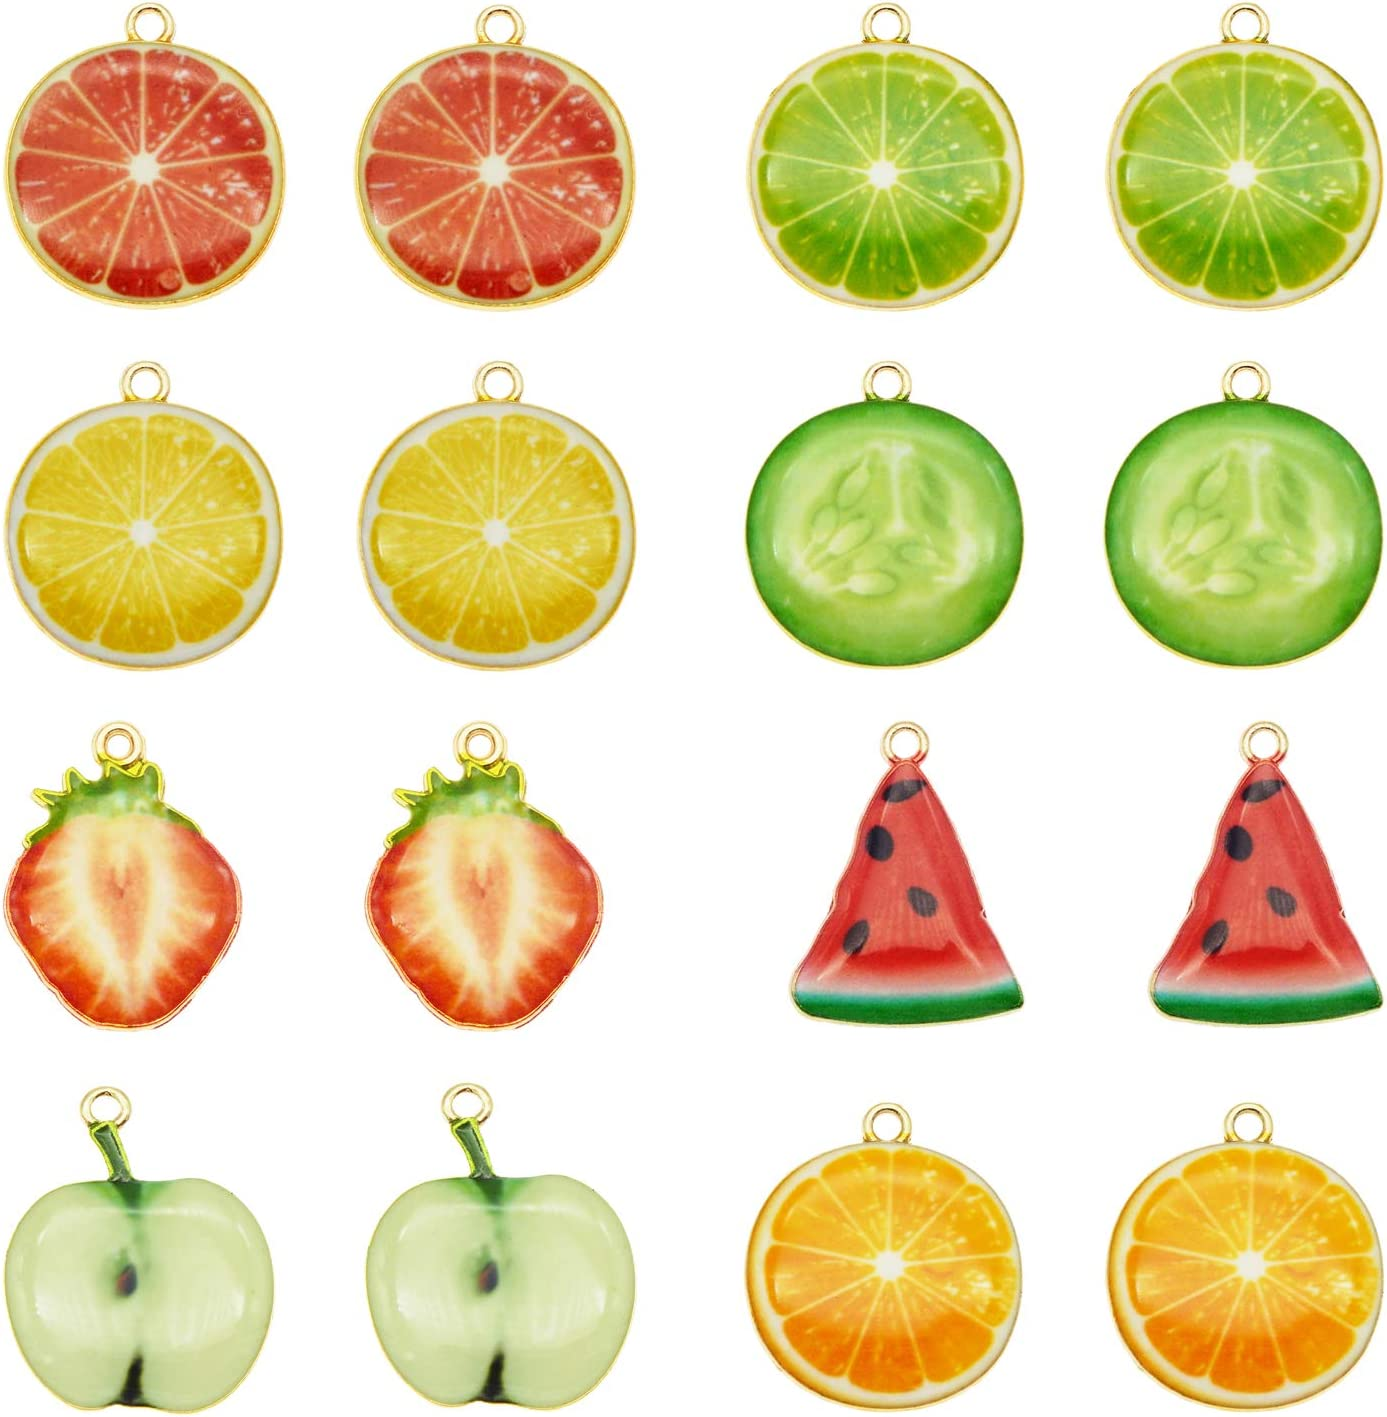 JJGrace 32pcs Assorted Gold Plated Enamel Lemon Watermelon Orange Strawberry Apple Dainty Dangle Fruit Food Charms for Earrings Jewelry Making Necklace Bracelet